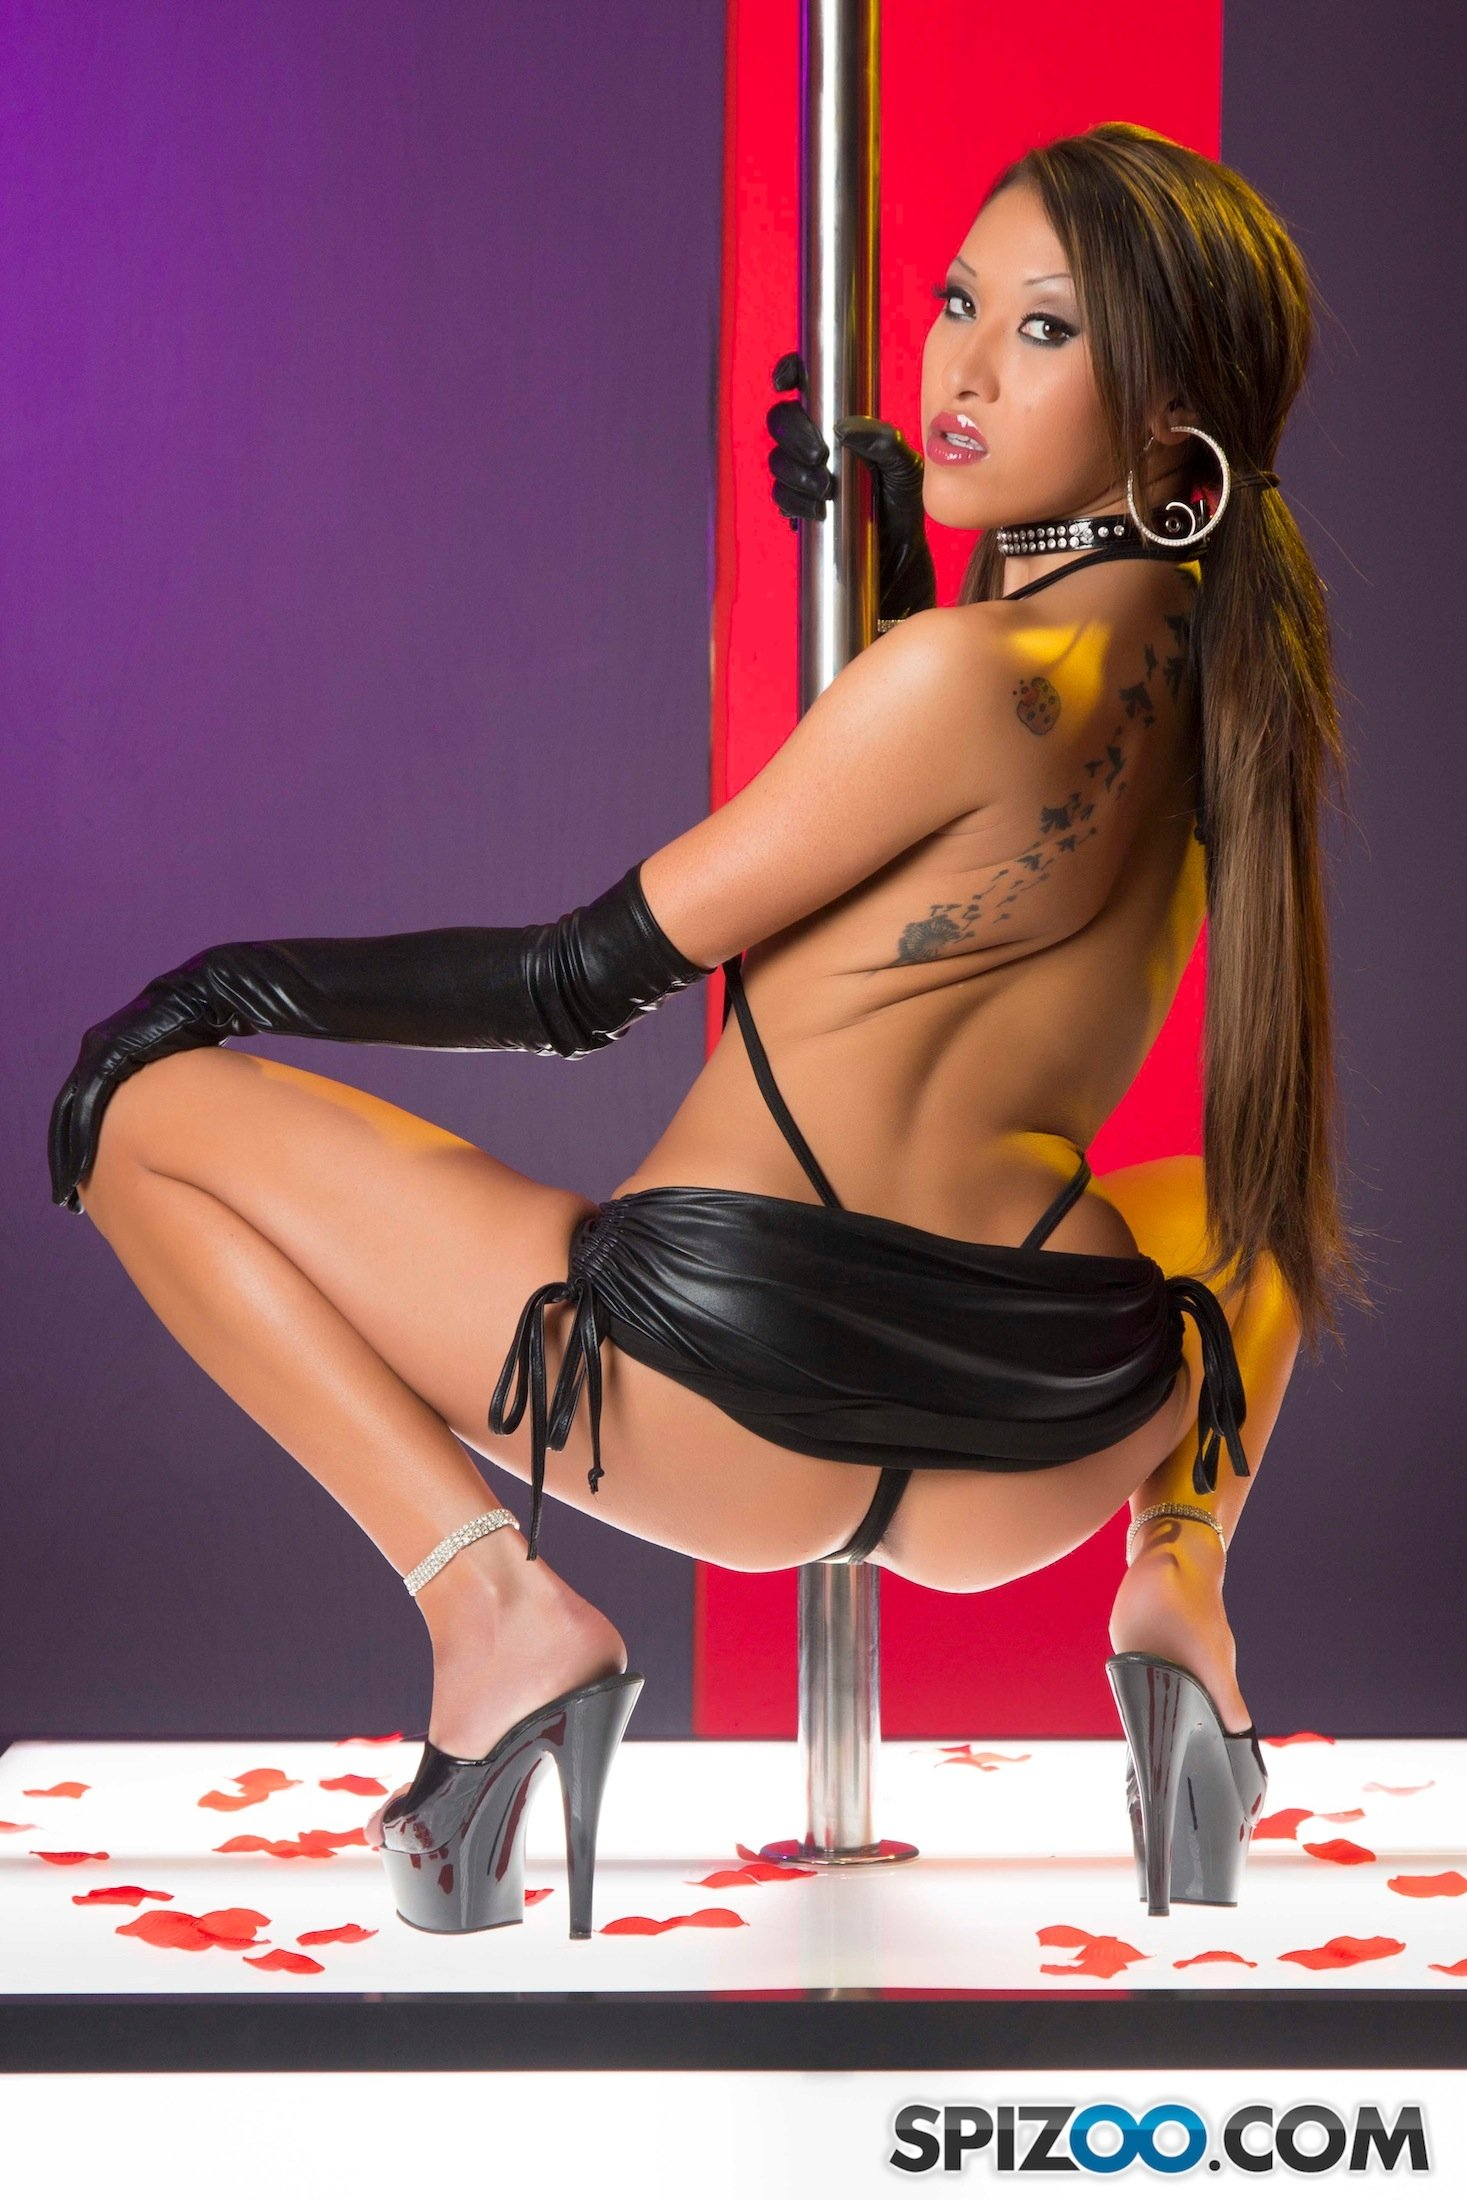 pole dancer picture gallery